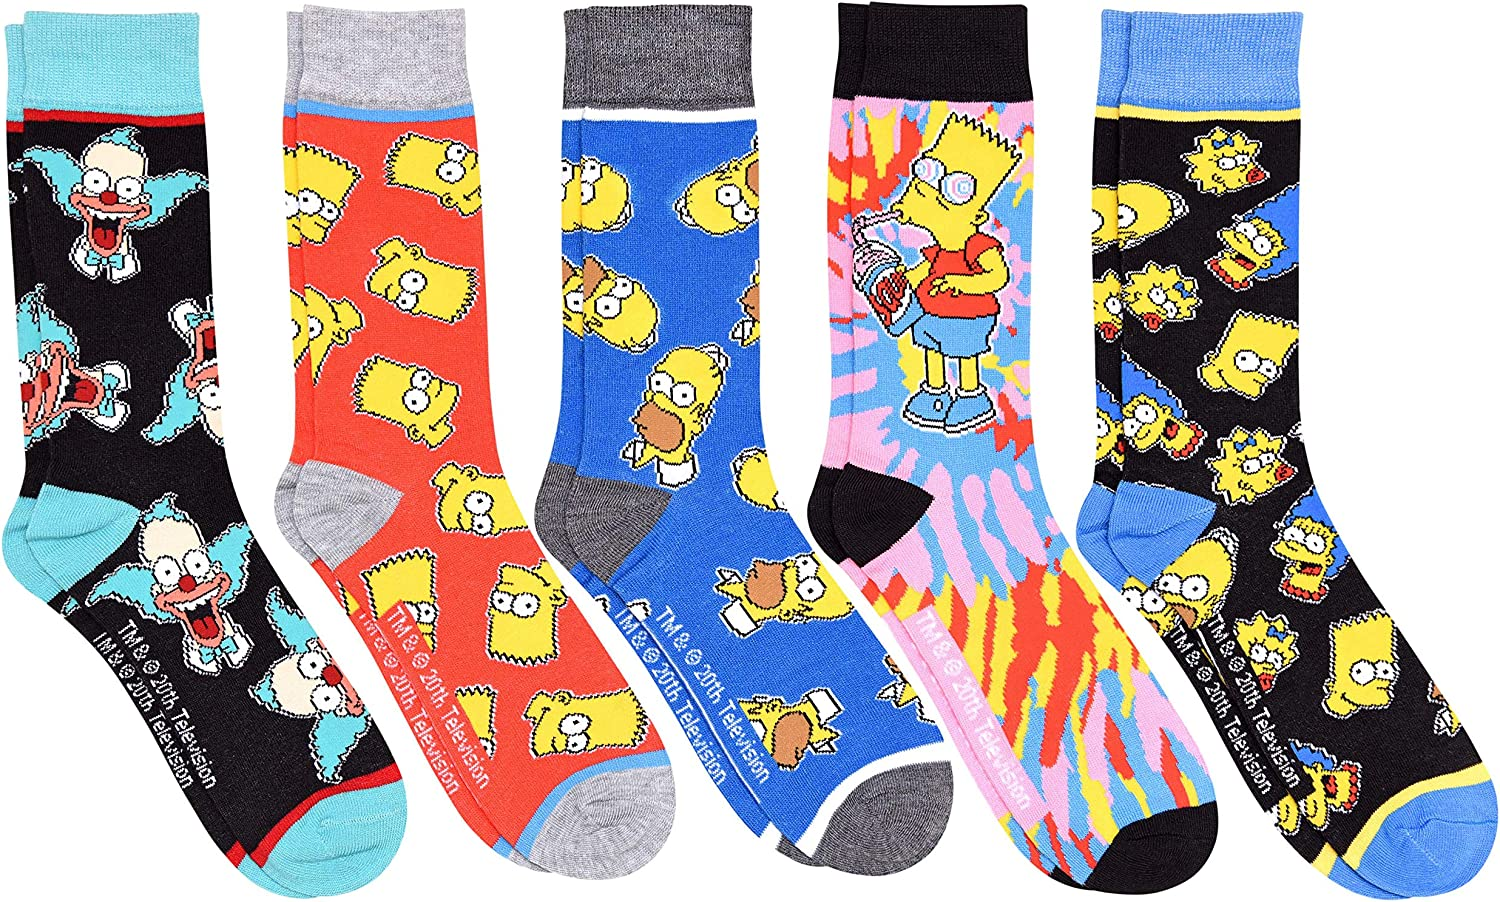 Hyp The Simpsons All Over Patterns Max 86% OFF Cheap SALE Start Pair Pack Men's Crew Socks 5